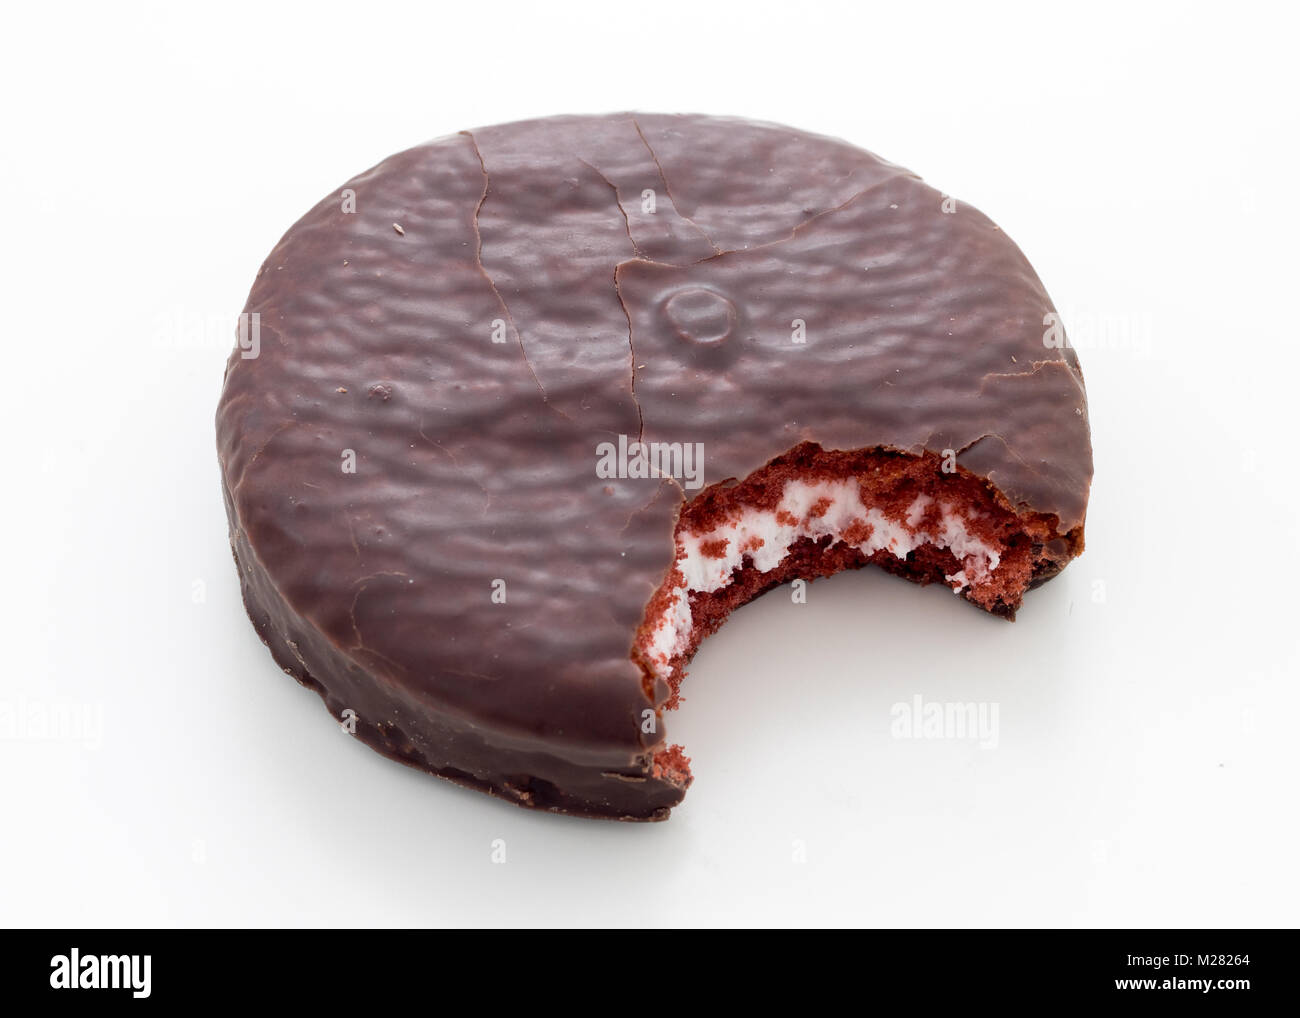 A Jos Louis (Jos. Louis) cake, a confection consisting of two red velvet cake rounds with a cream filling within - Stock Image